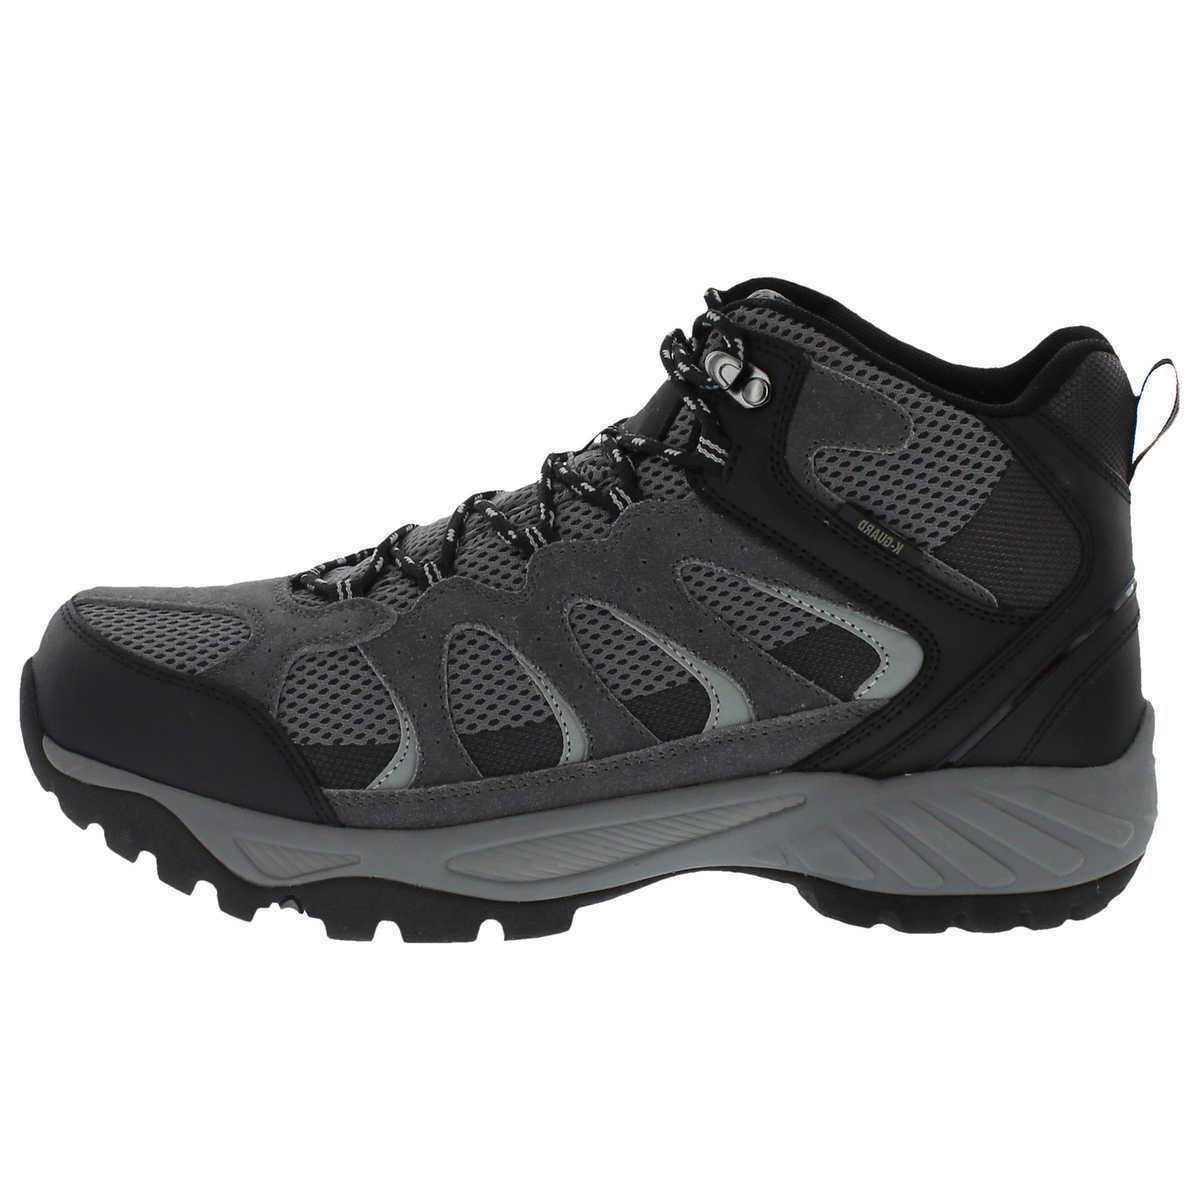 New Boot, Black, Suede Leather, All Terrain Hiking